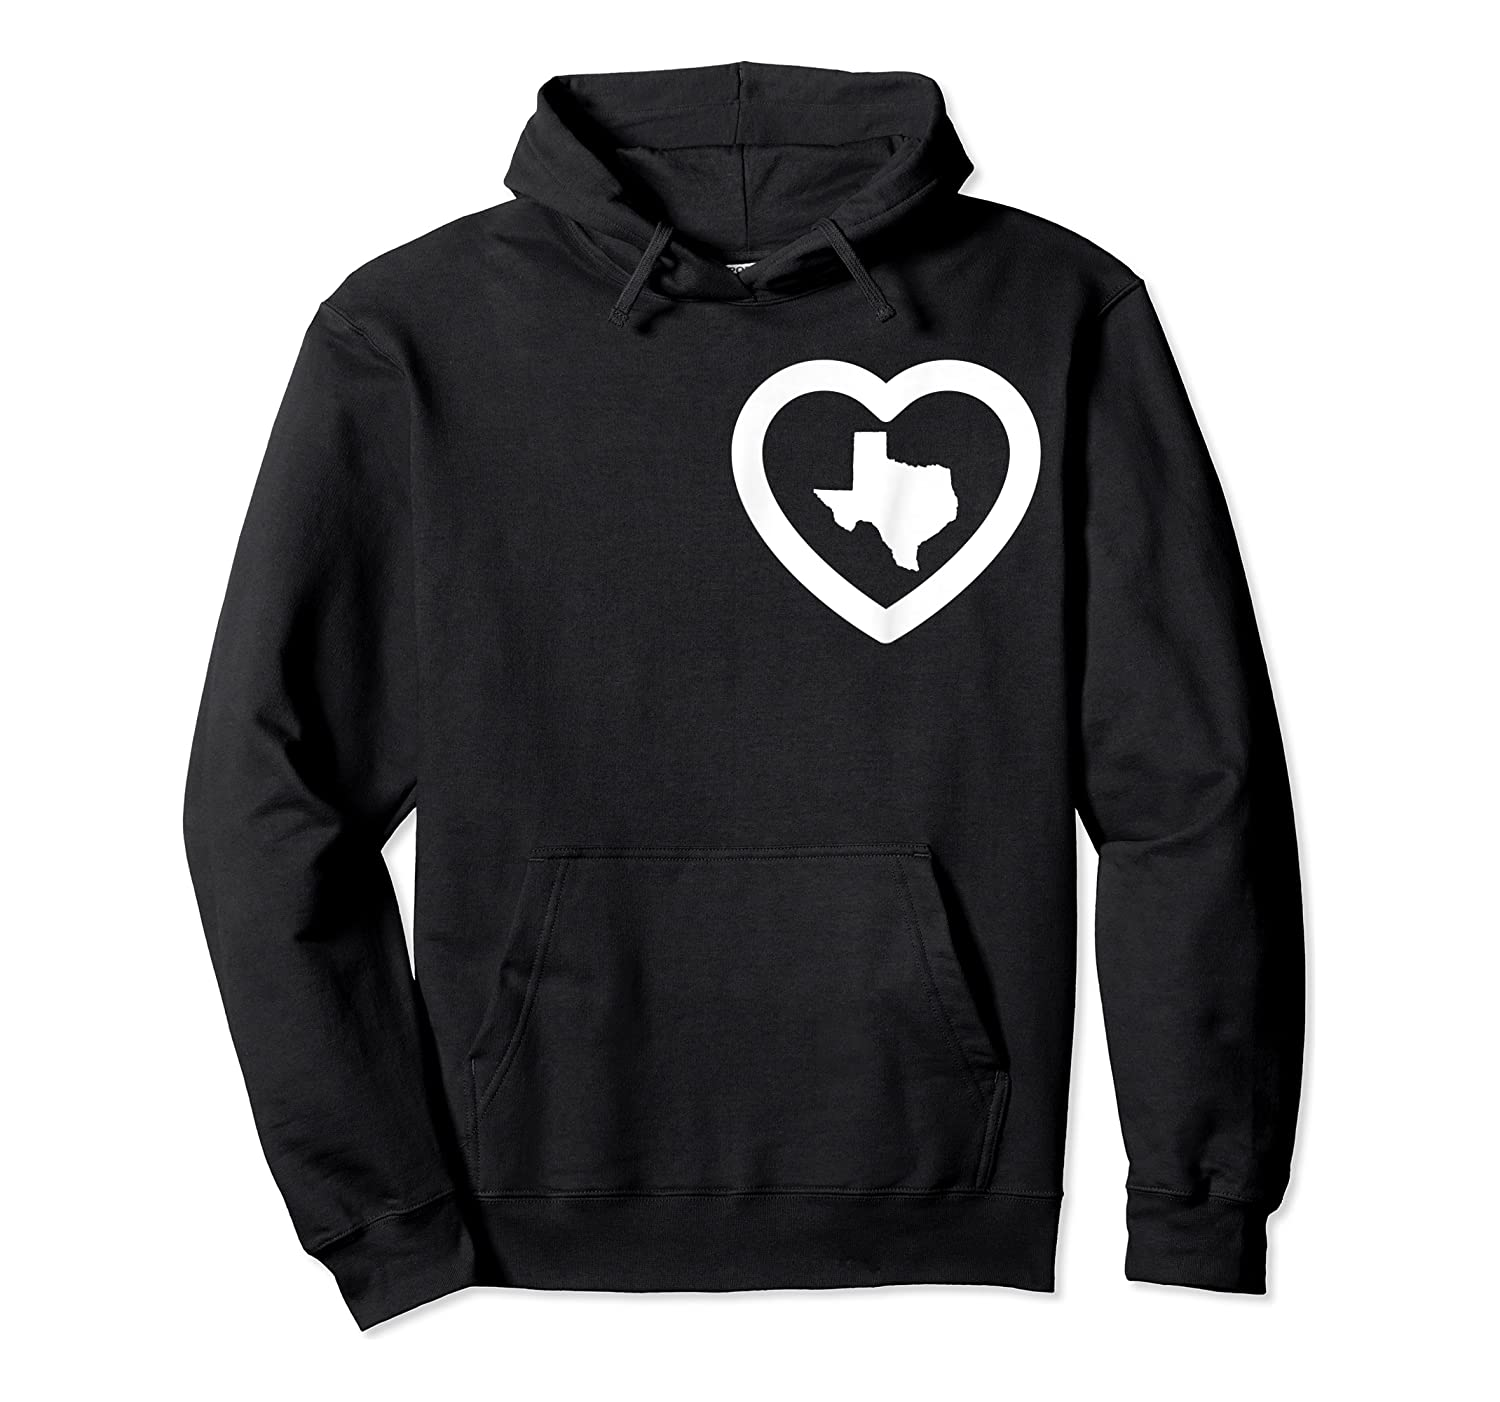 Love Texas Pride Love Proud Texan Southern Lone Star Tx Shirts Unisex Pullover Hoodie